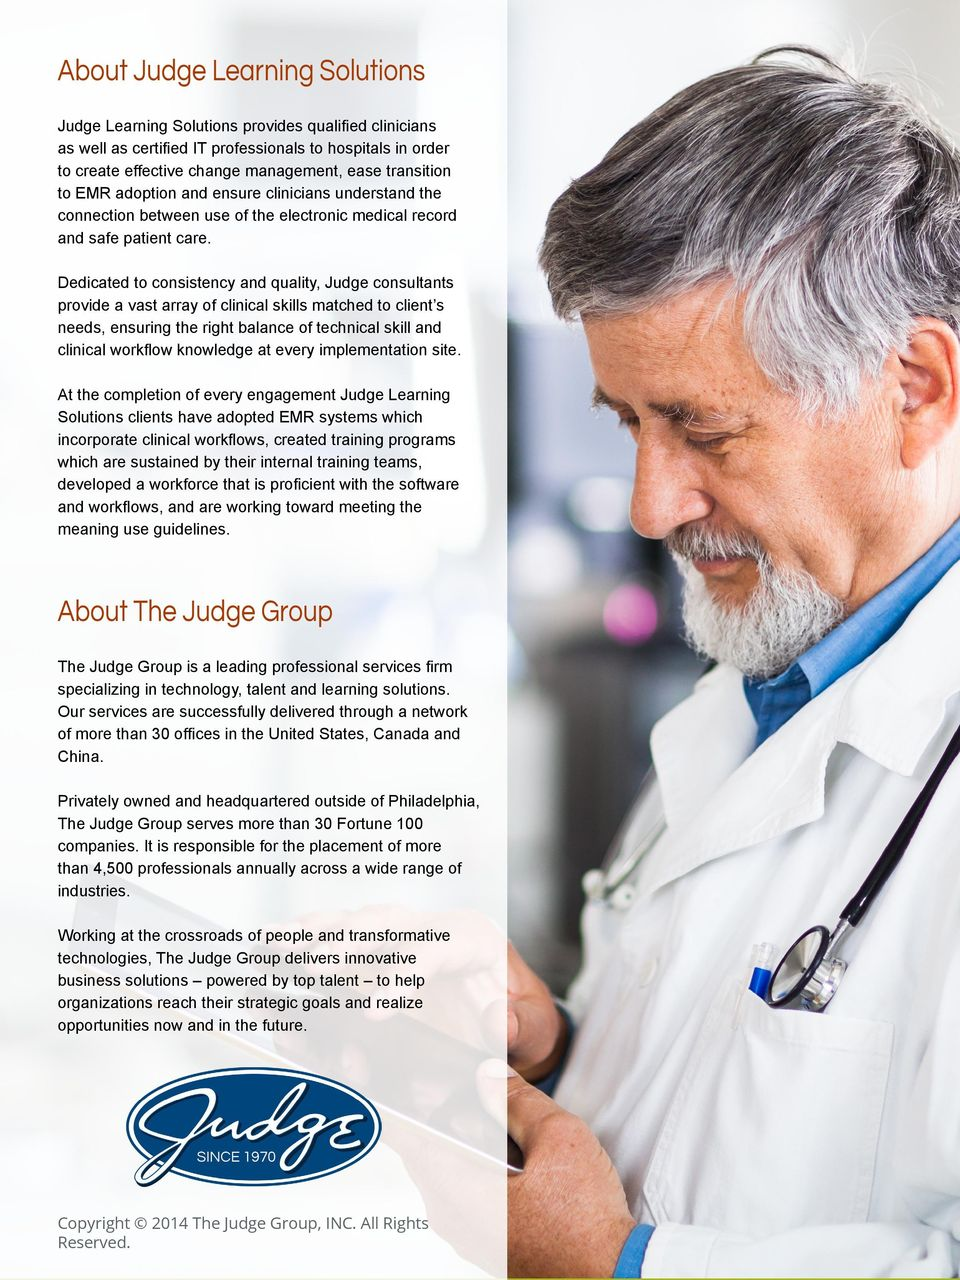 Dedicated to consistency and quality, Judge consultants provide a vast array of clinical skills matched to client s needs, ensuring the right balance of technical skill and clinical workflow